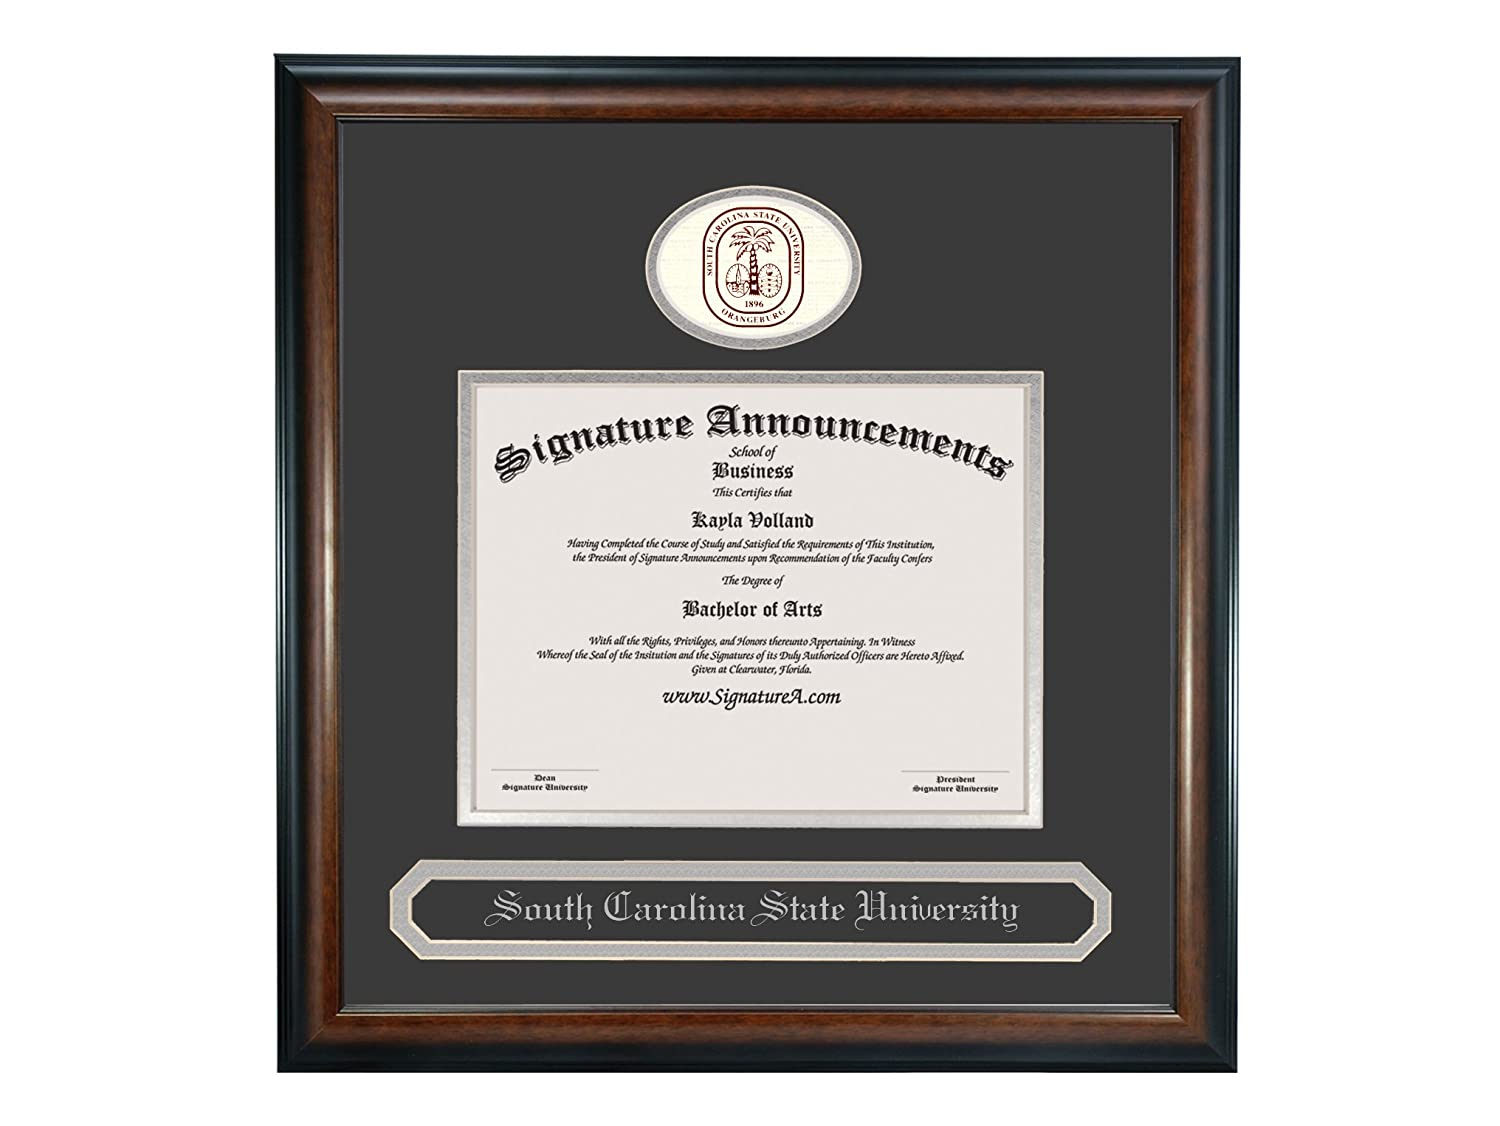 Signature Announcements South-Carolina-State-University Undergraduate Sculpted Foil Seal /& Name Graduation Diploma Frame 20 x 20 Matte Mahogany